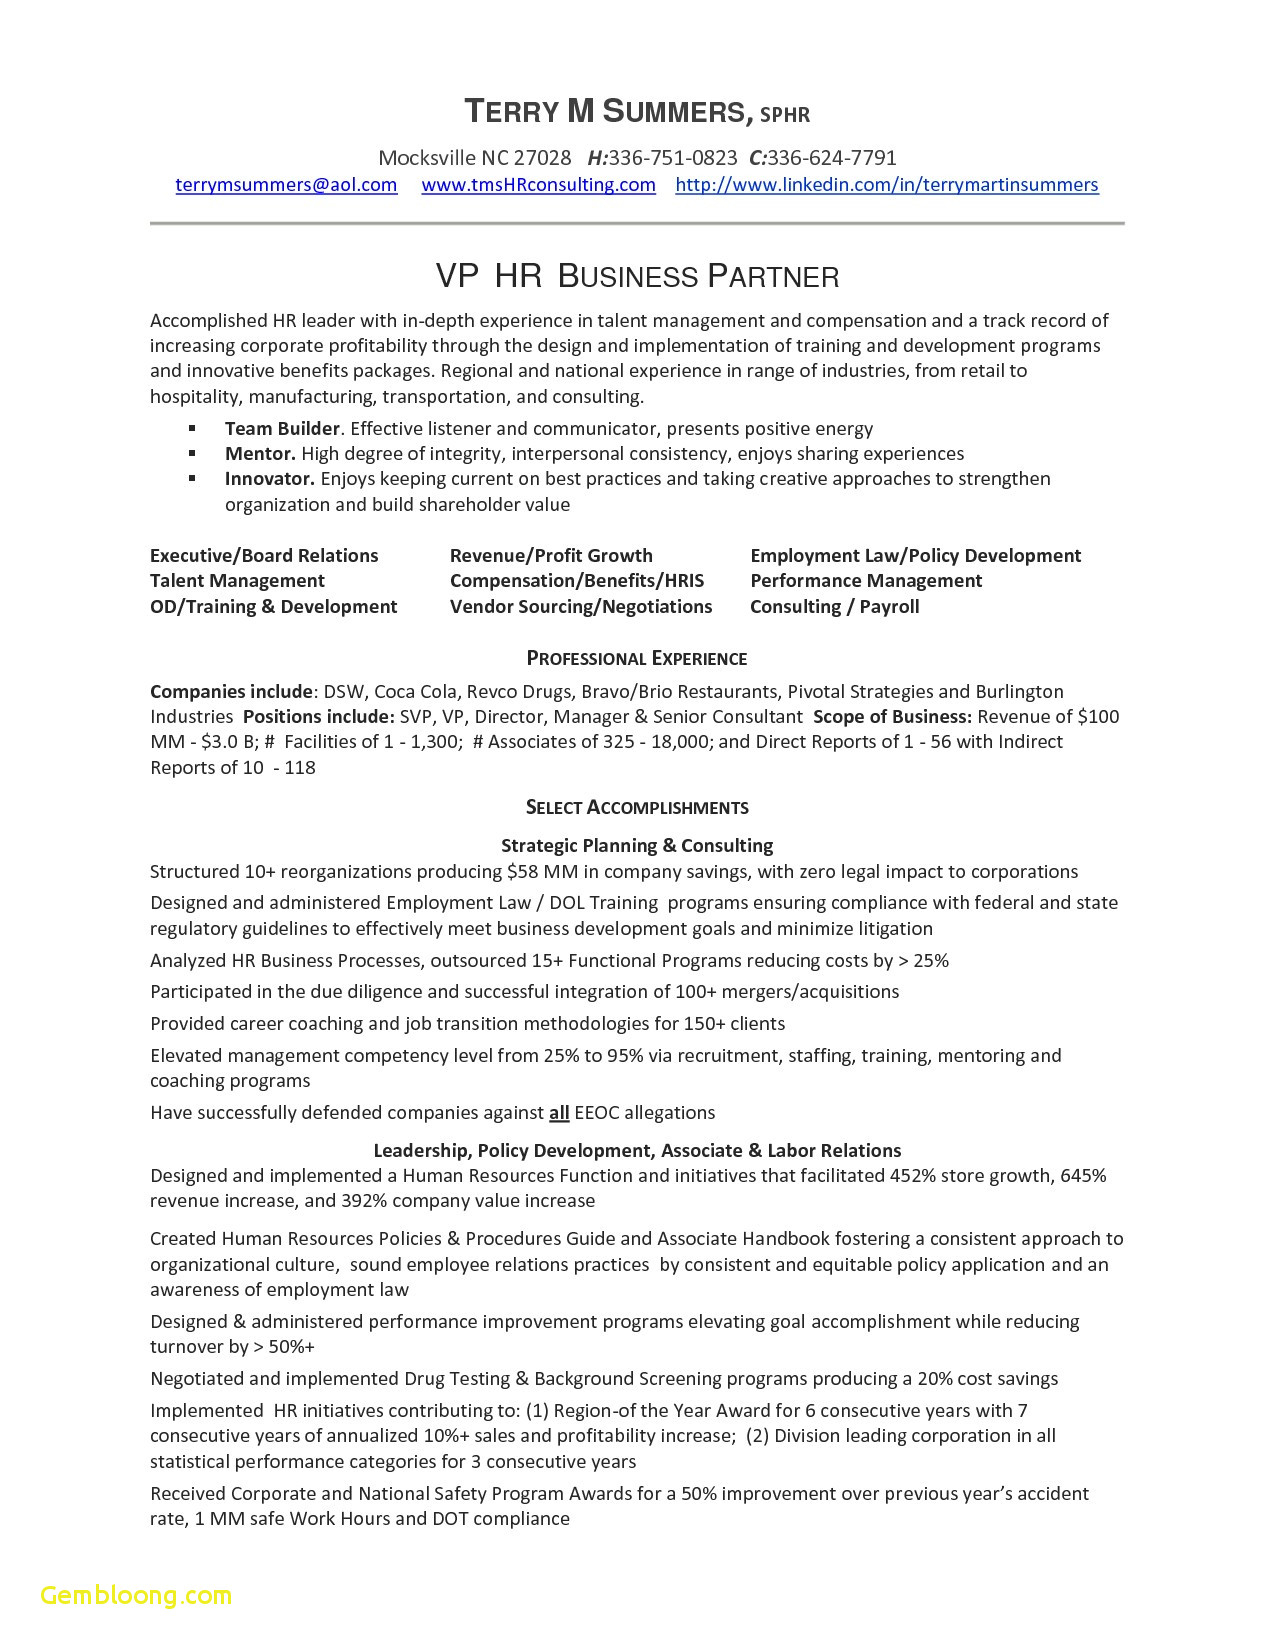 Vendor Letter Template - Resume for Human Resources Job Download now Cover Letter Template Hr